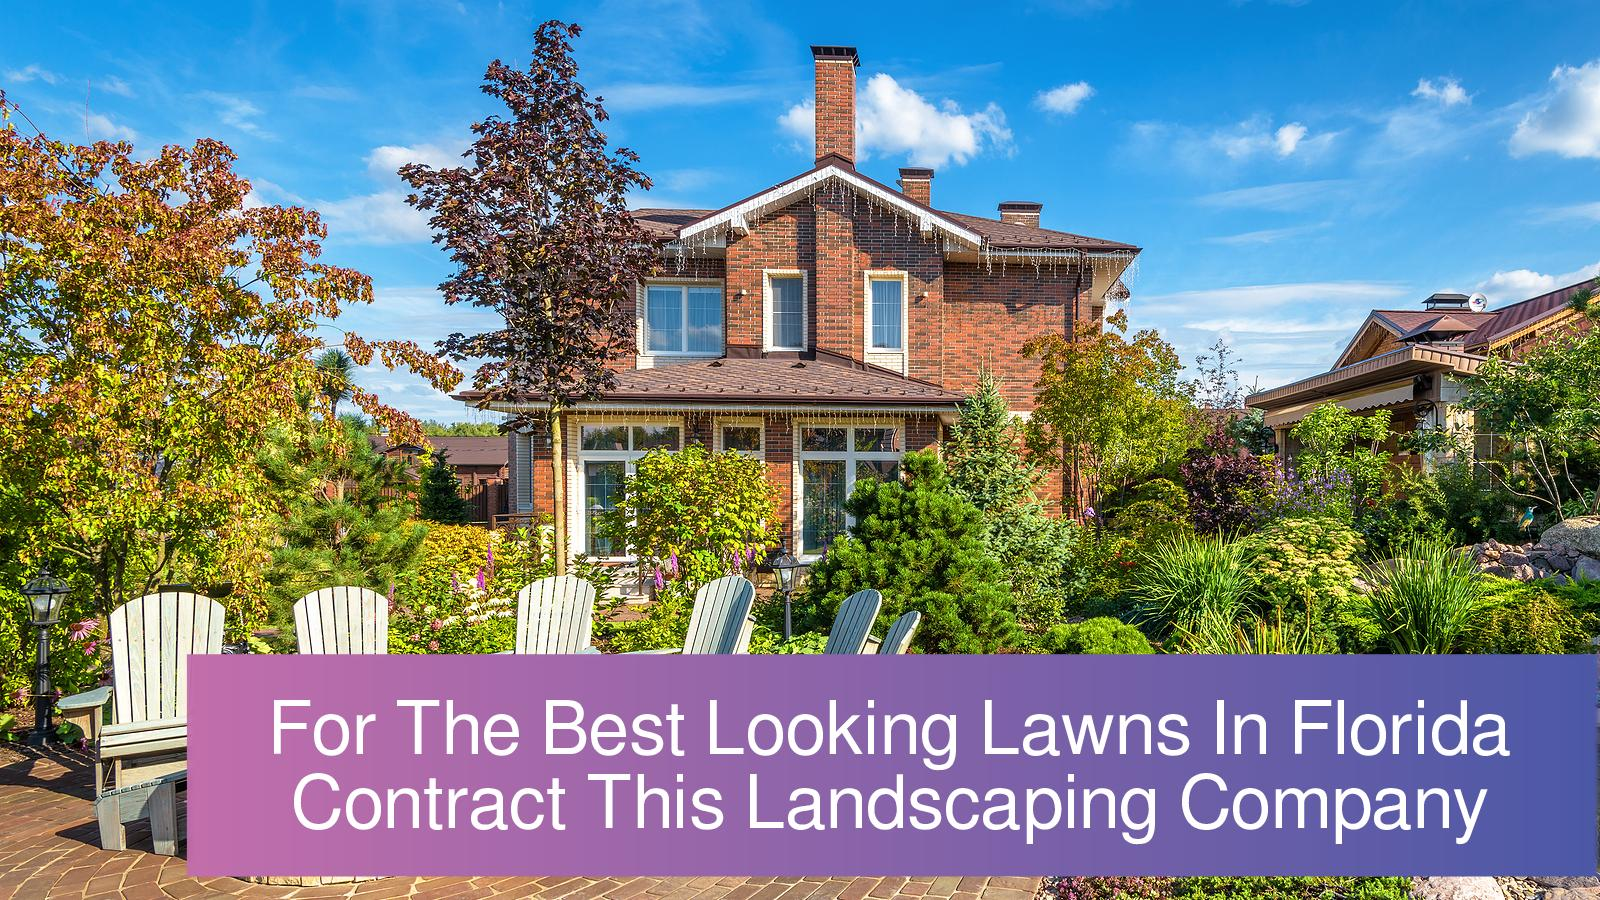 Calameo For The Best Looking Lawns In Florida Contract This Landscaping Company